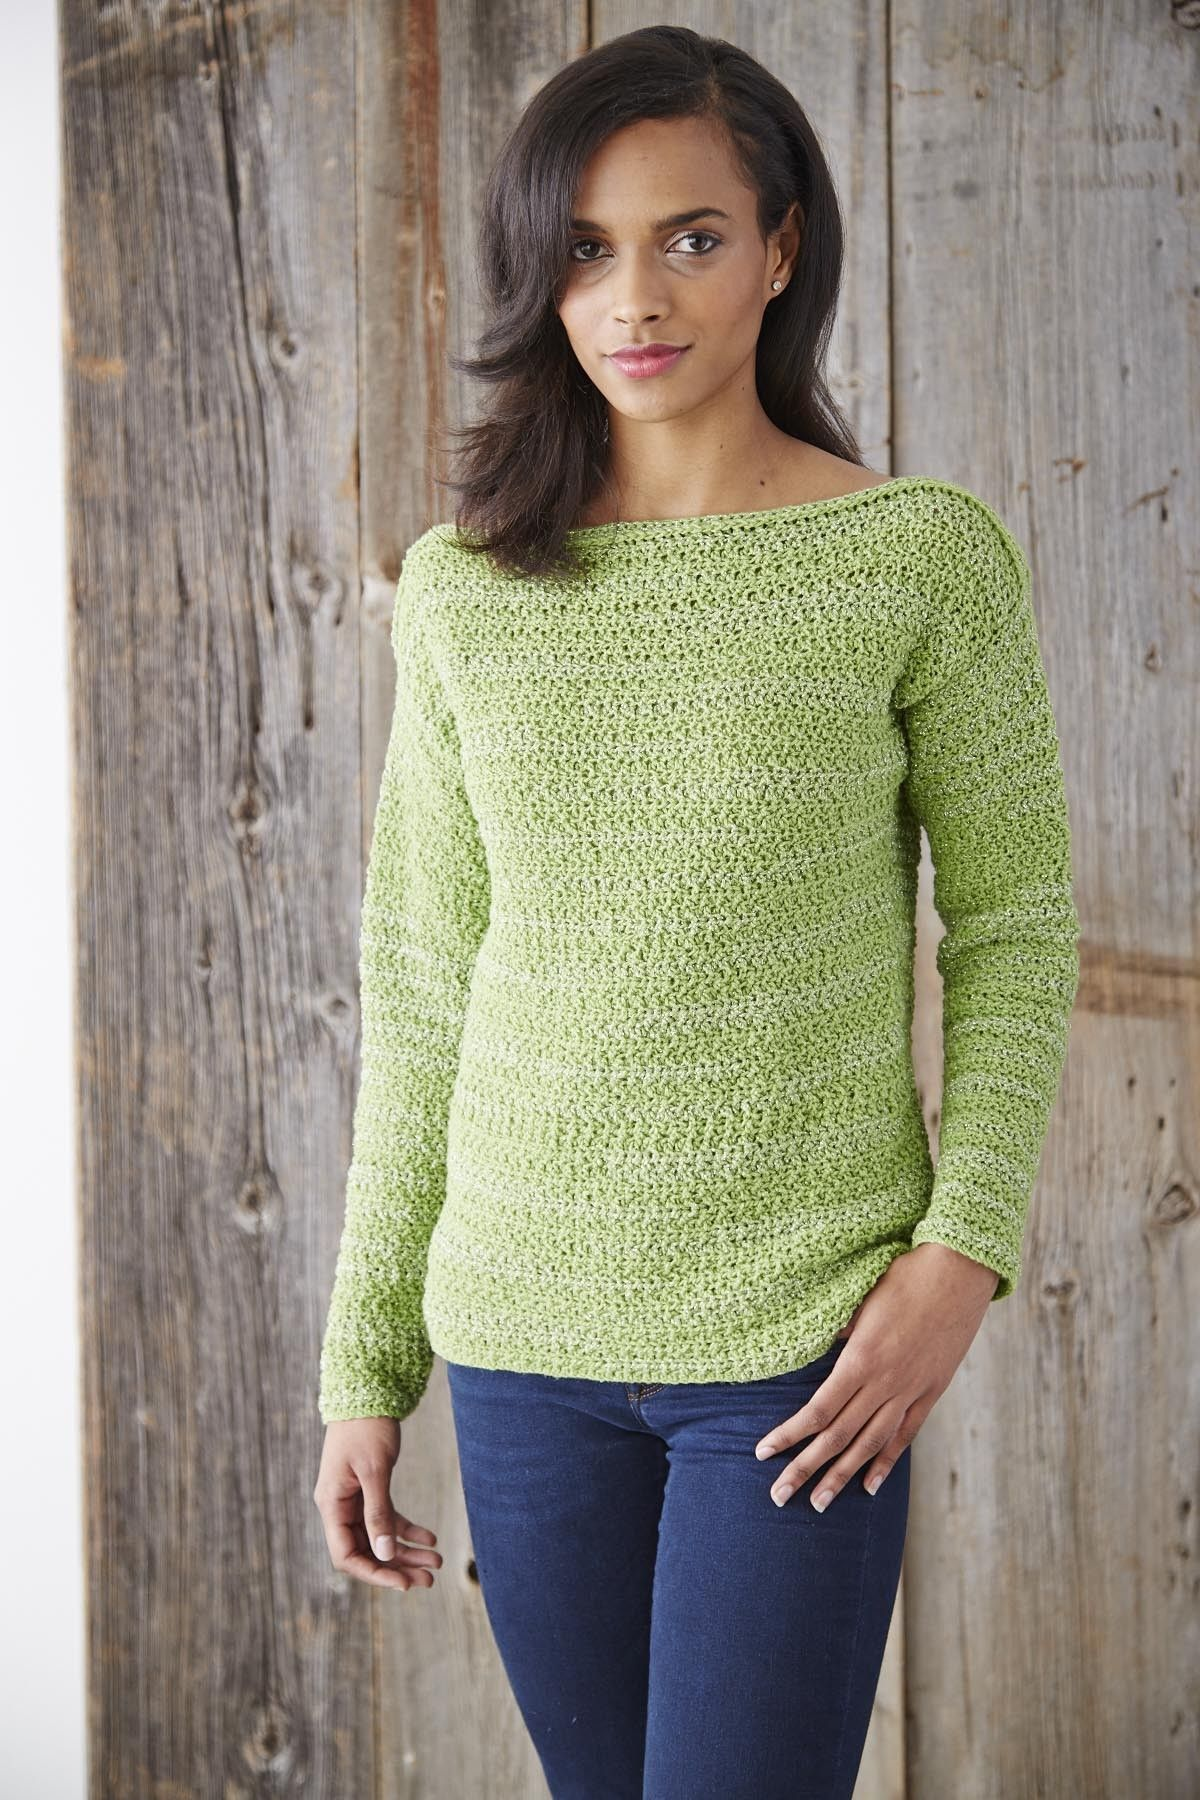 Boat Neck Pullover Sweater | Crochet fashion, Crochet ...